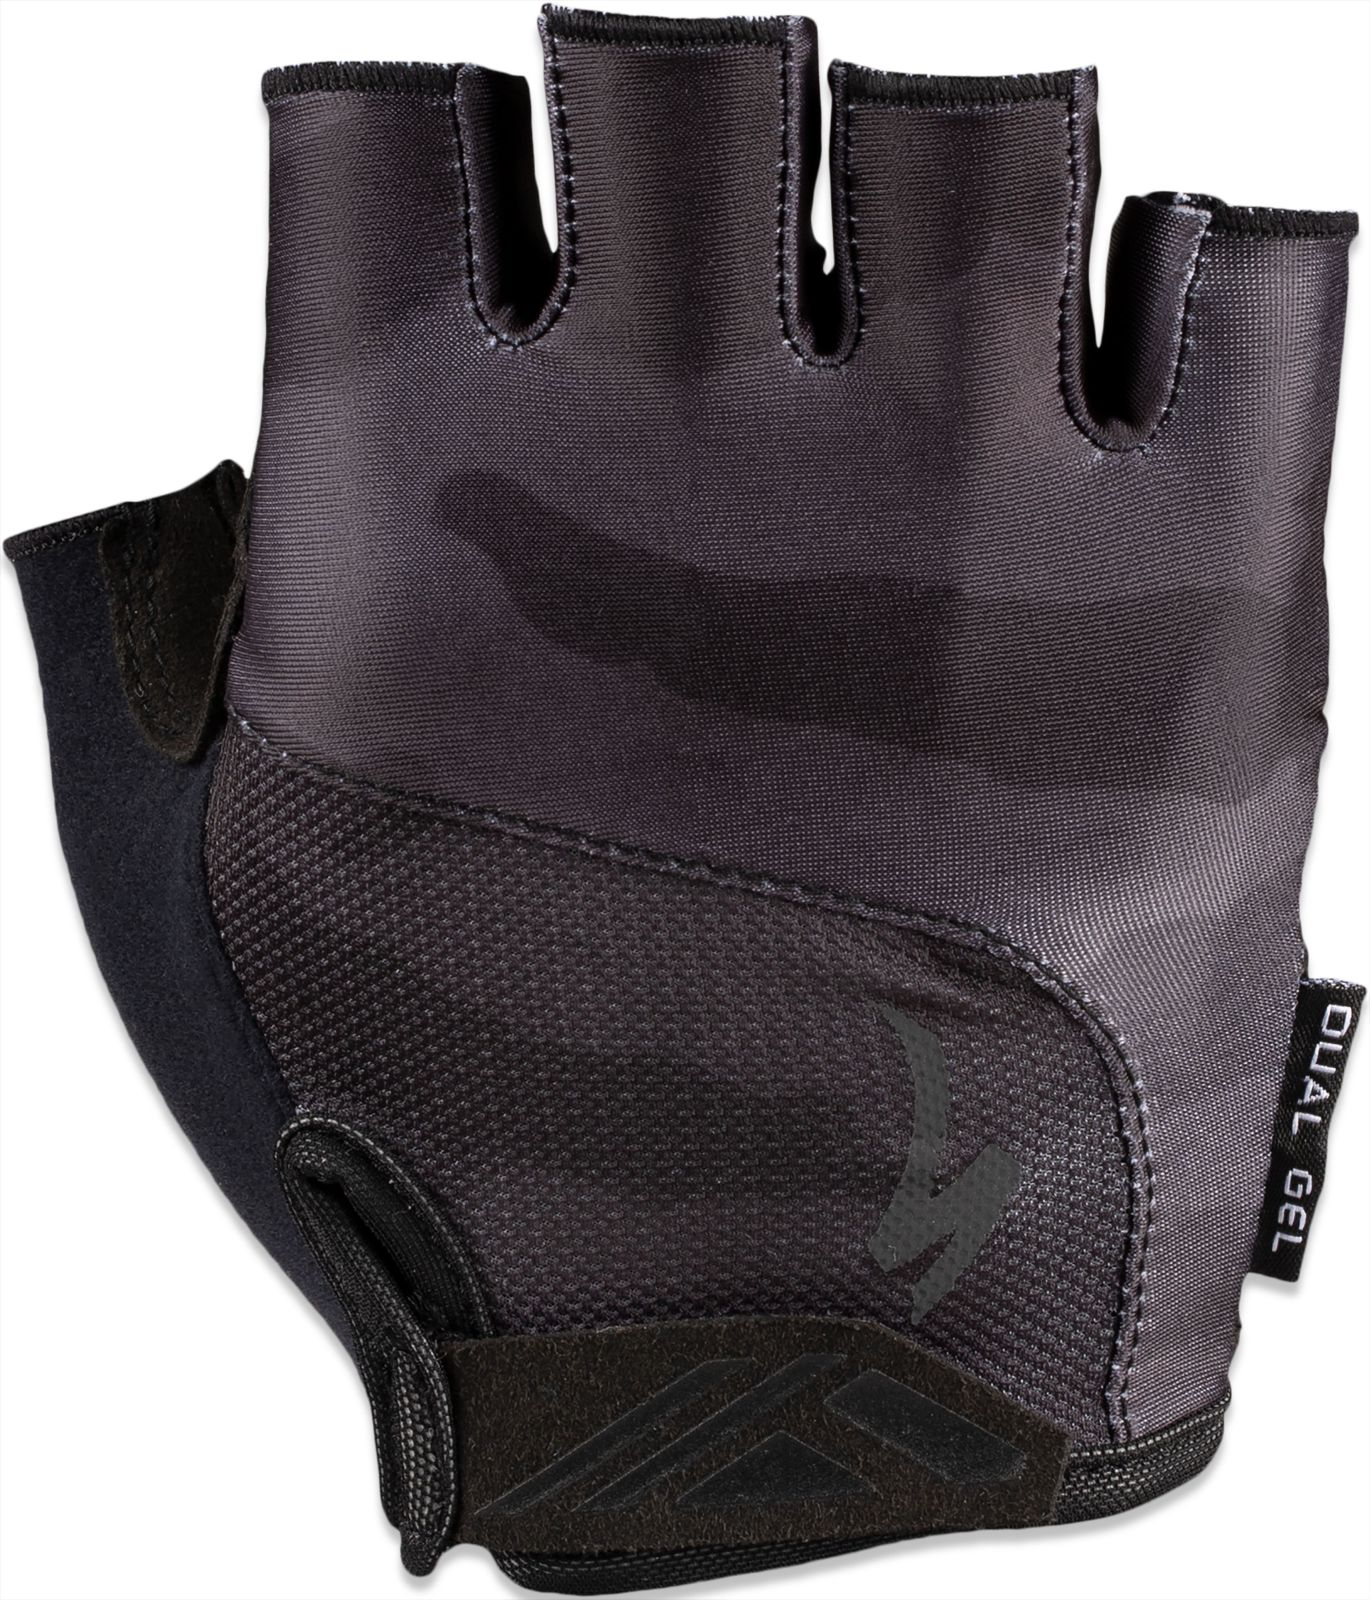 Specialized BG Dual Gel Glove SF - black/charcoal camo M